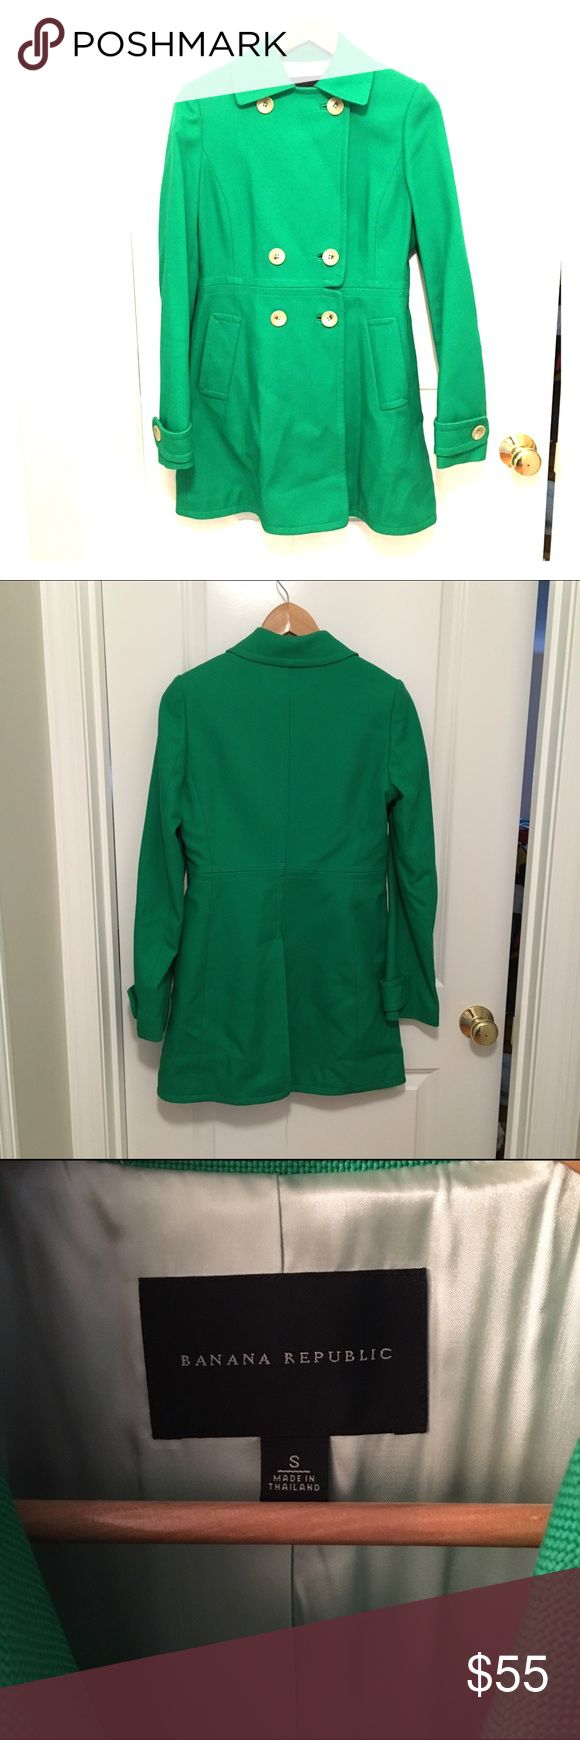 Banana Republic Kelly Green Peacoat Banana Republic Kelly Green Peacoat, size small. This jacket is perfect for the fall and is the perfect accessory to a white T and jeans :) Banana Republic Jackets & Coats Pea Coats